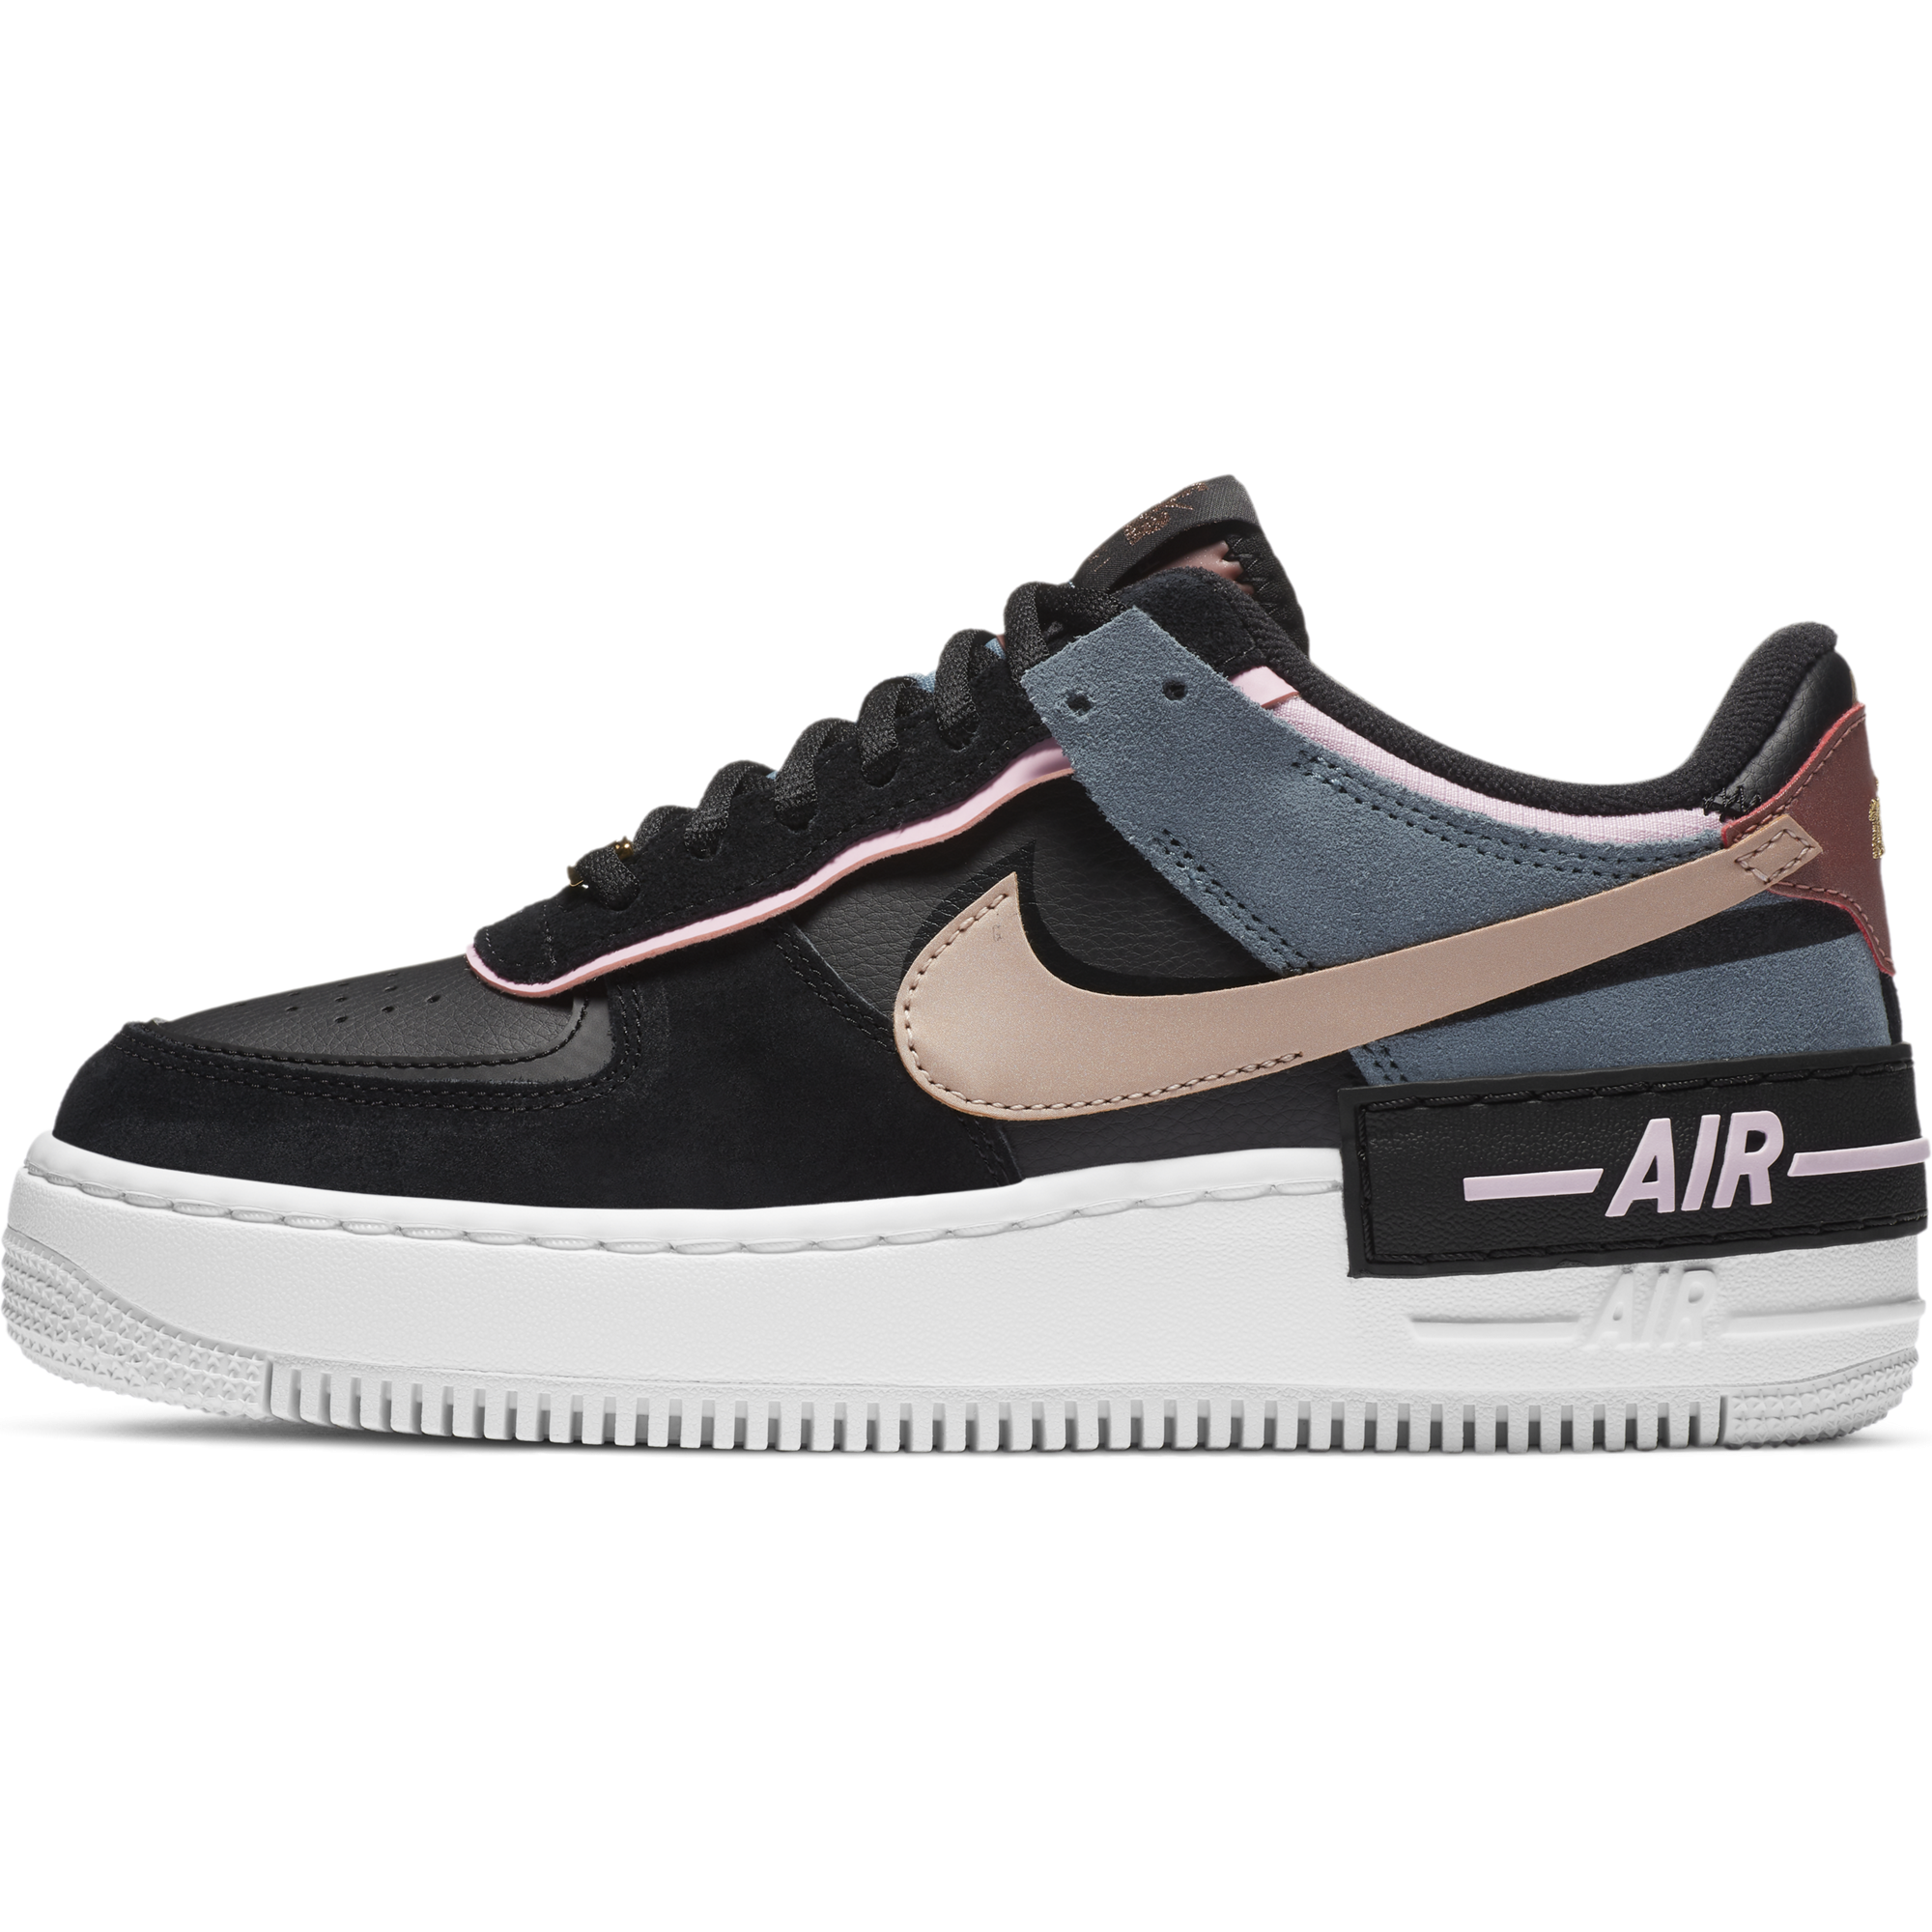 Nike Femme Air Force 1 Shadow Black Metallic Red Bronze Baskets